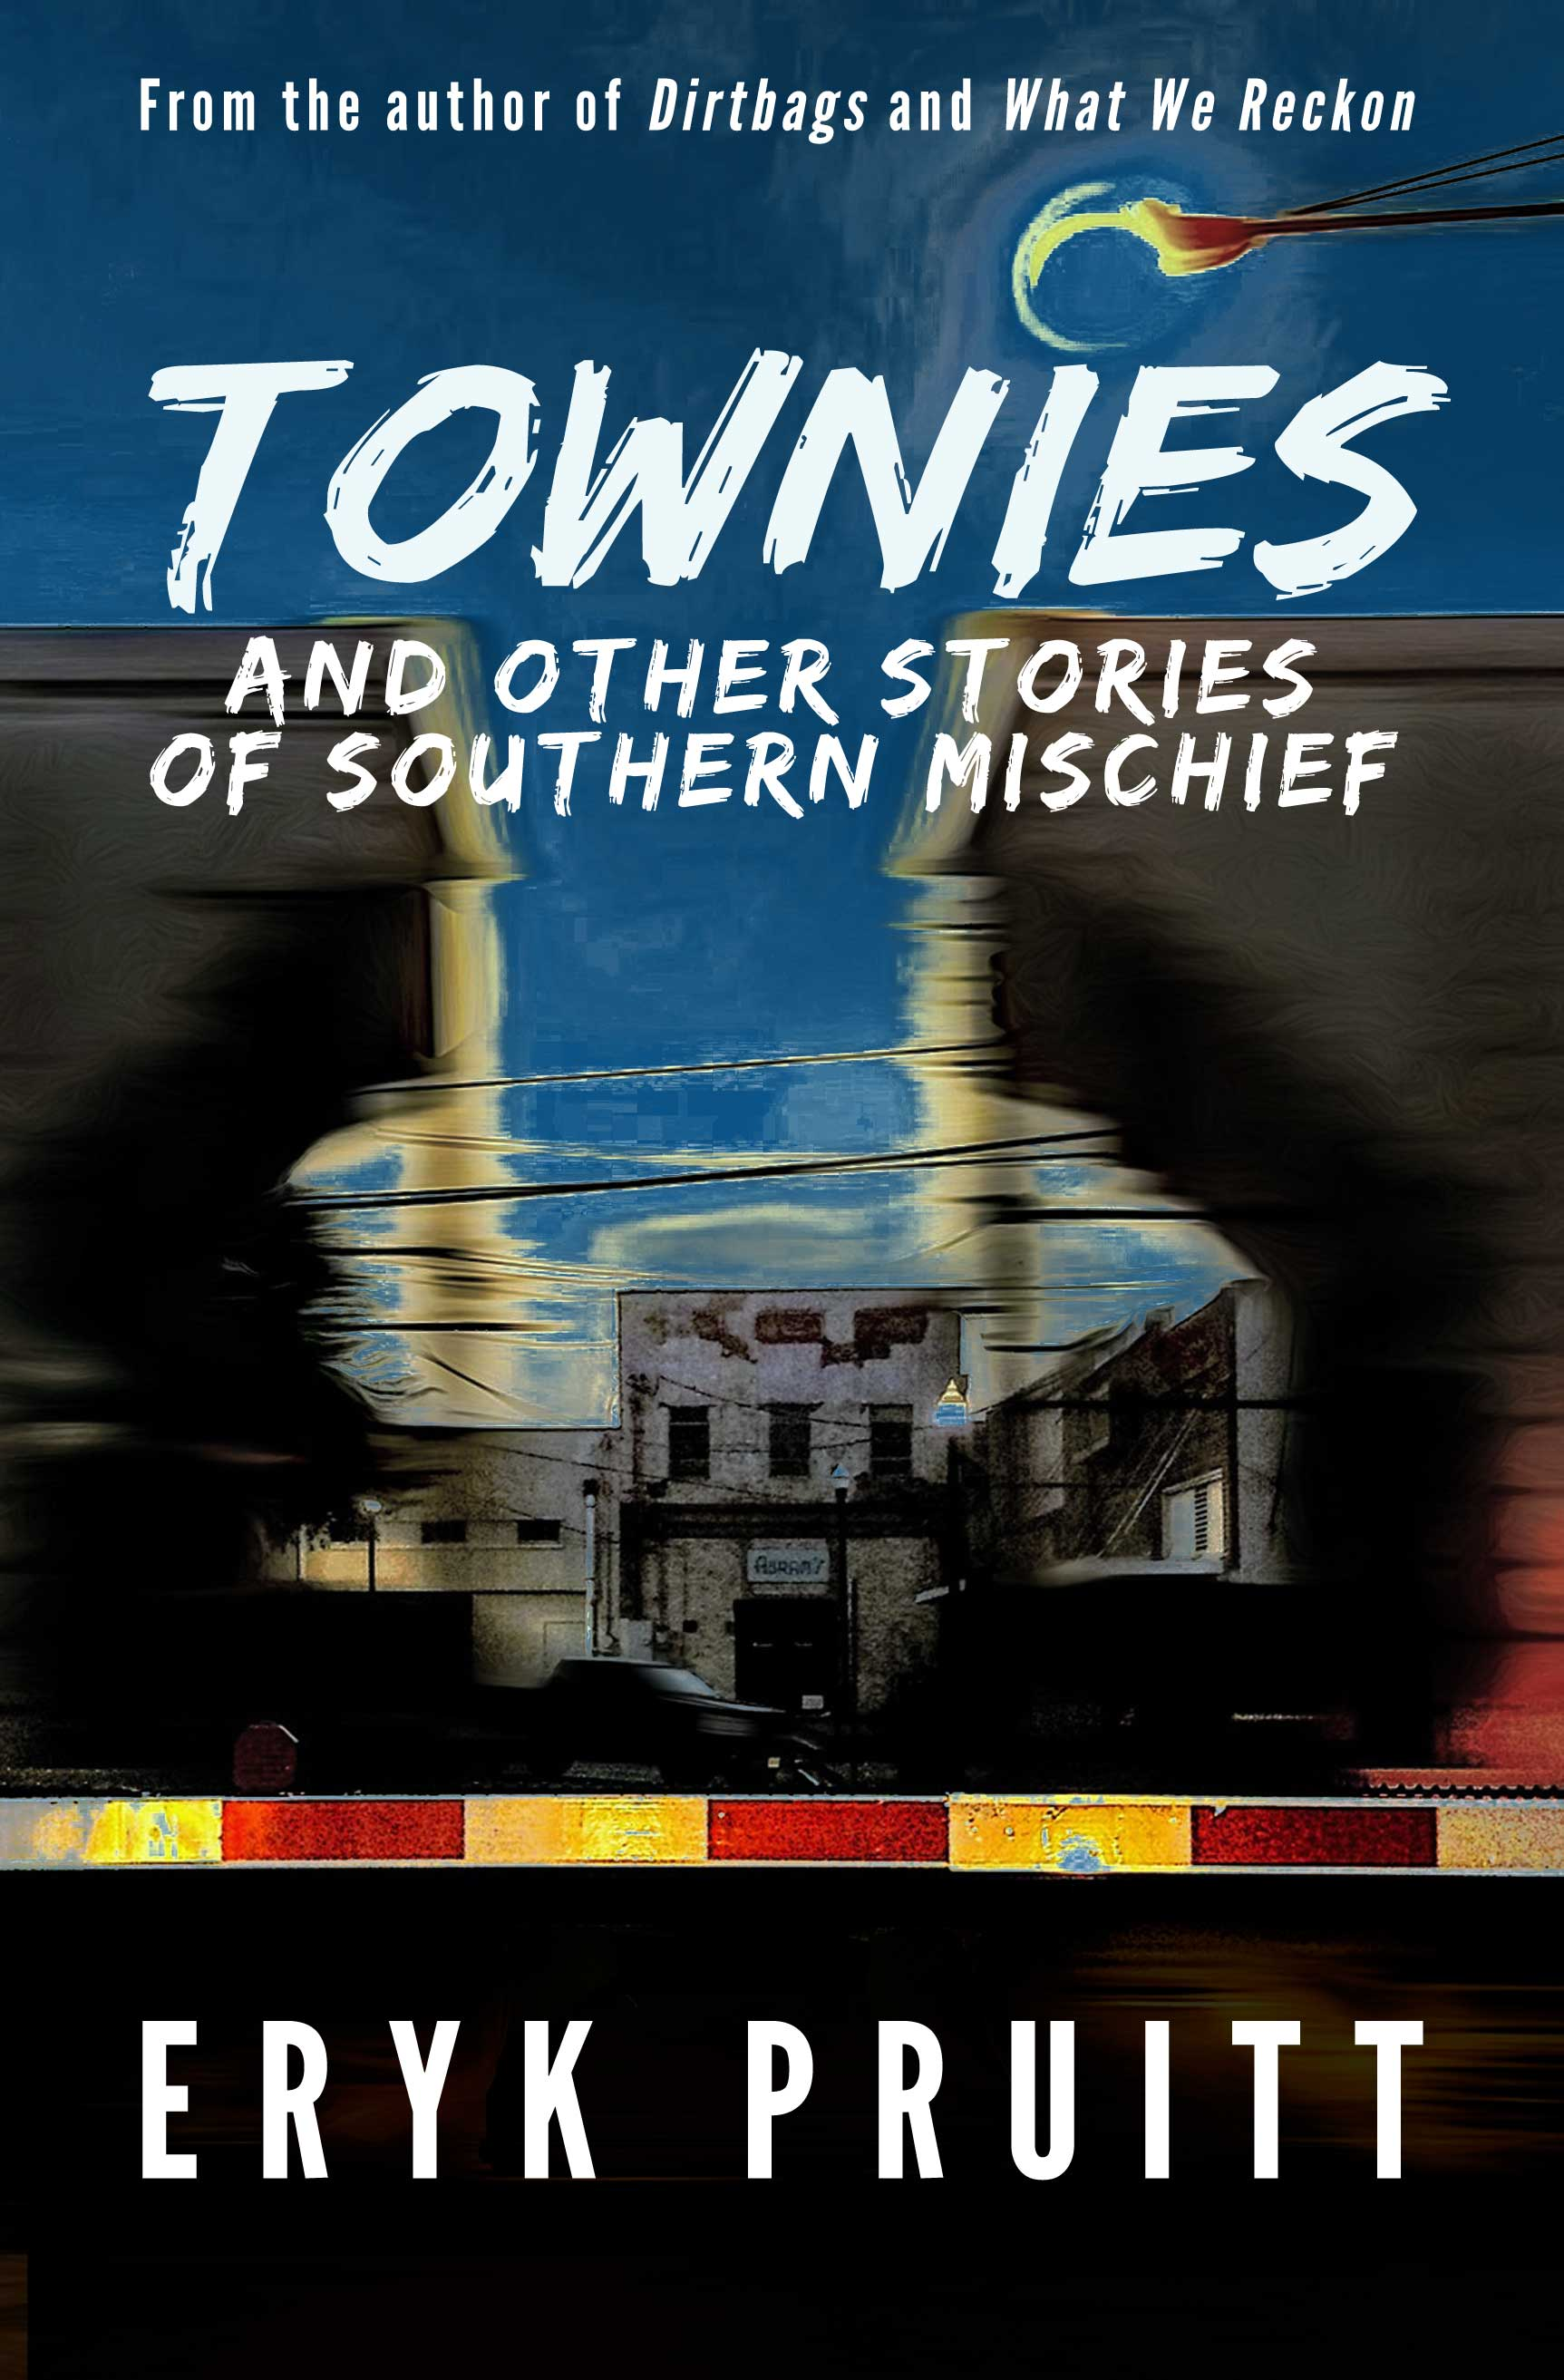 Townies and other tales of Southern Noir, by Eryk Pruitt